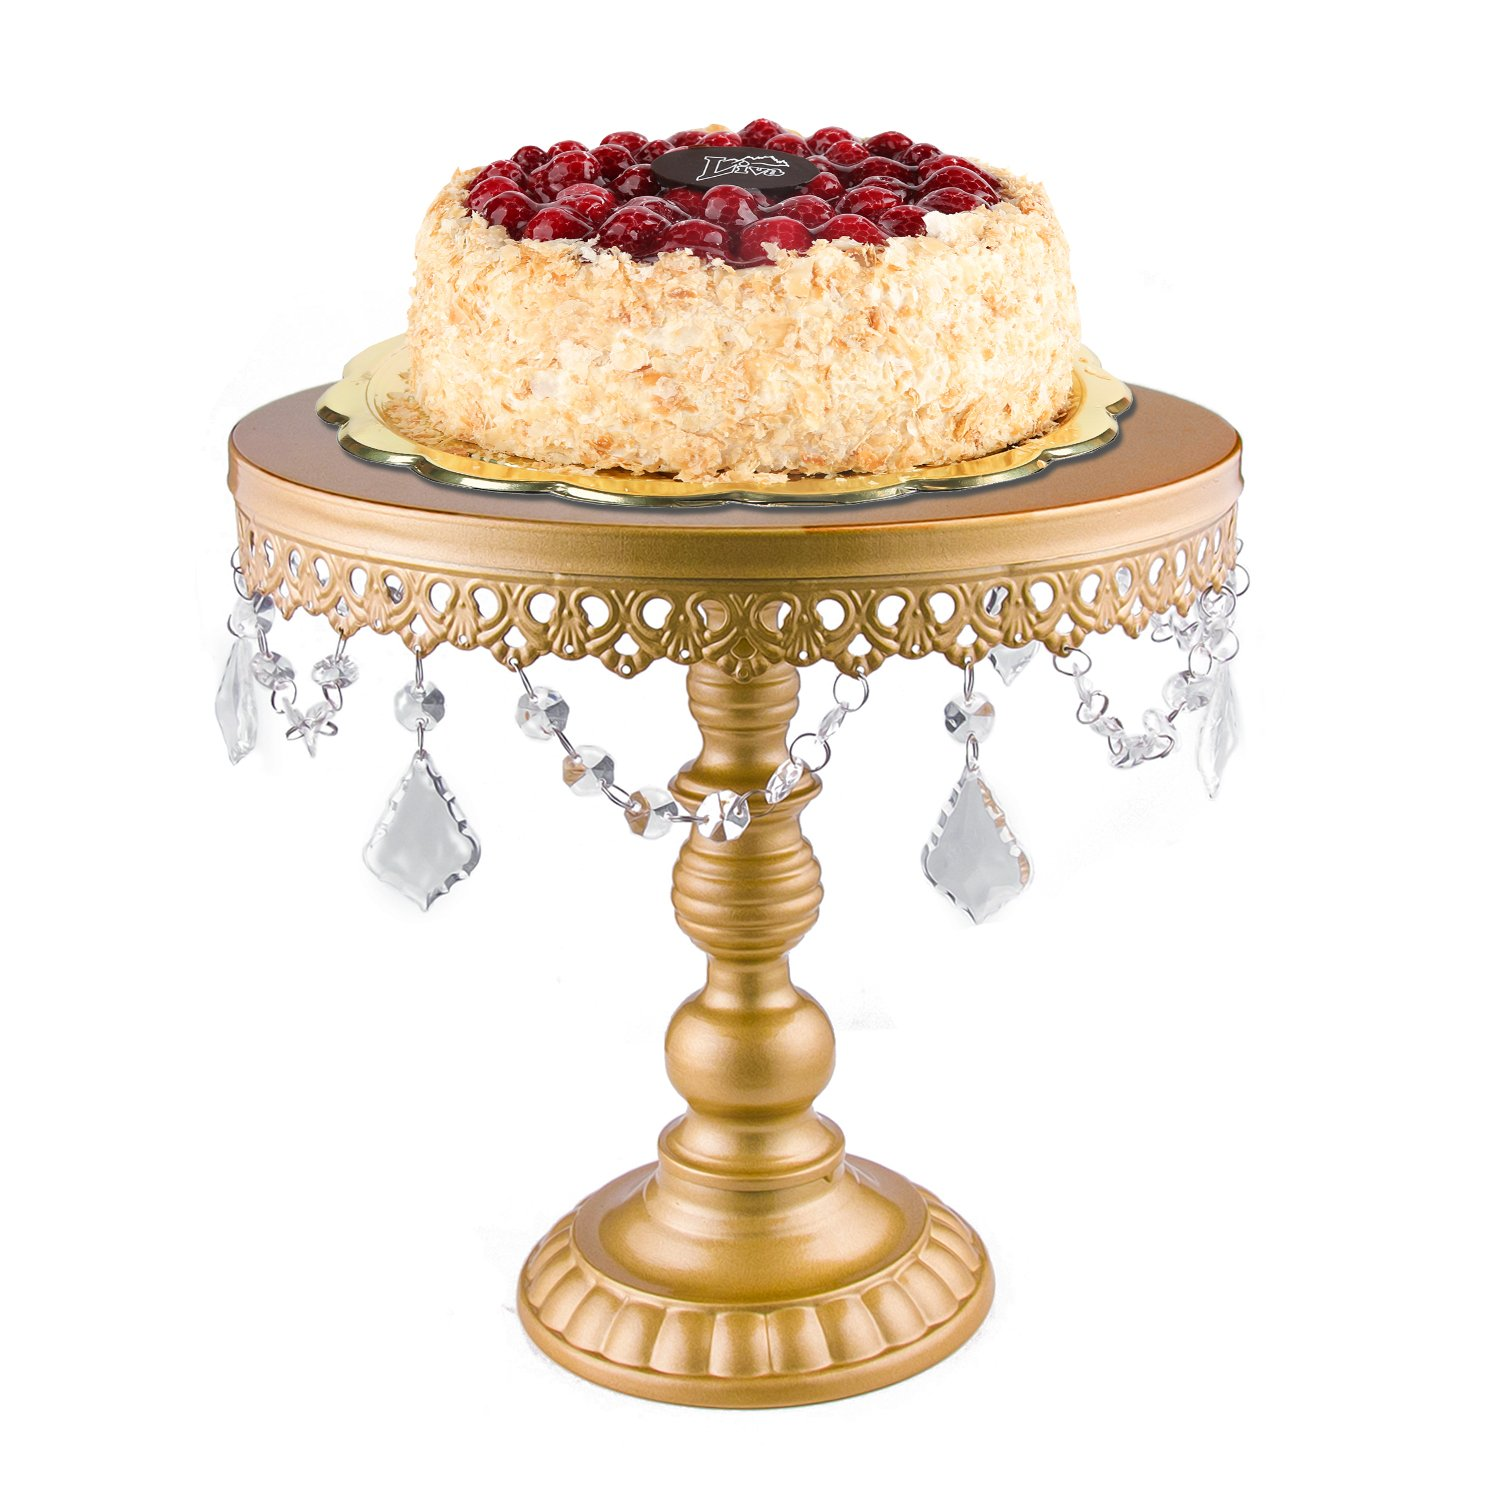 18K Gold Antique Metal Cake Stand, Round Cupcake Stands, Wedding Birthday Party Dessert Cupcake Pedestal/Display/Plate with Crystals and Beads(L:12X11.5'')